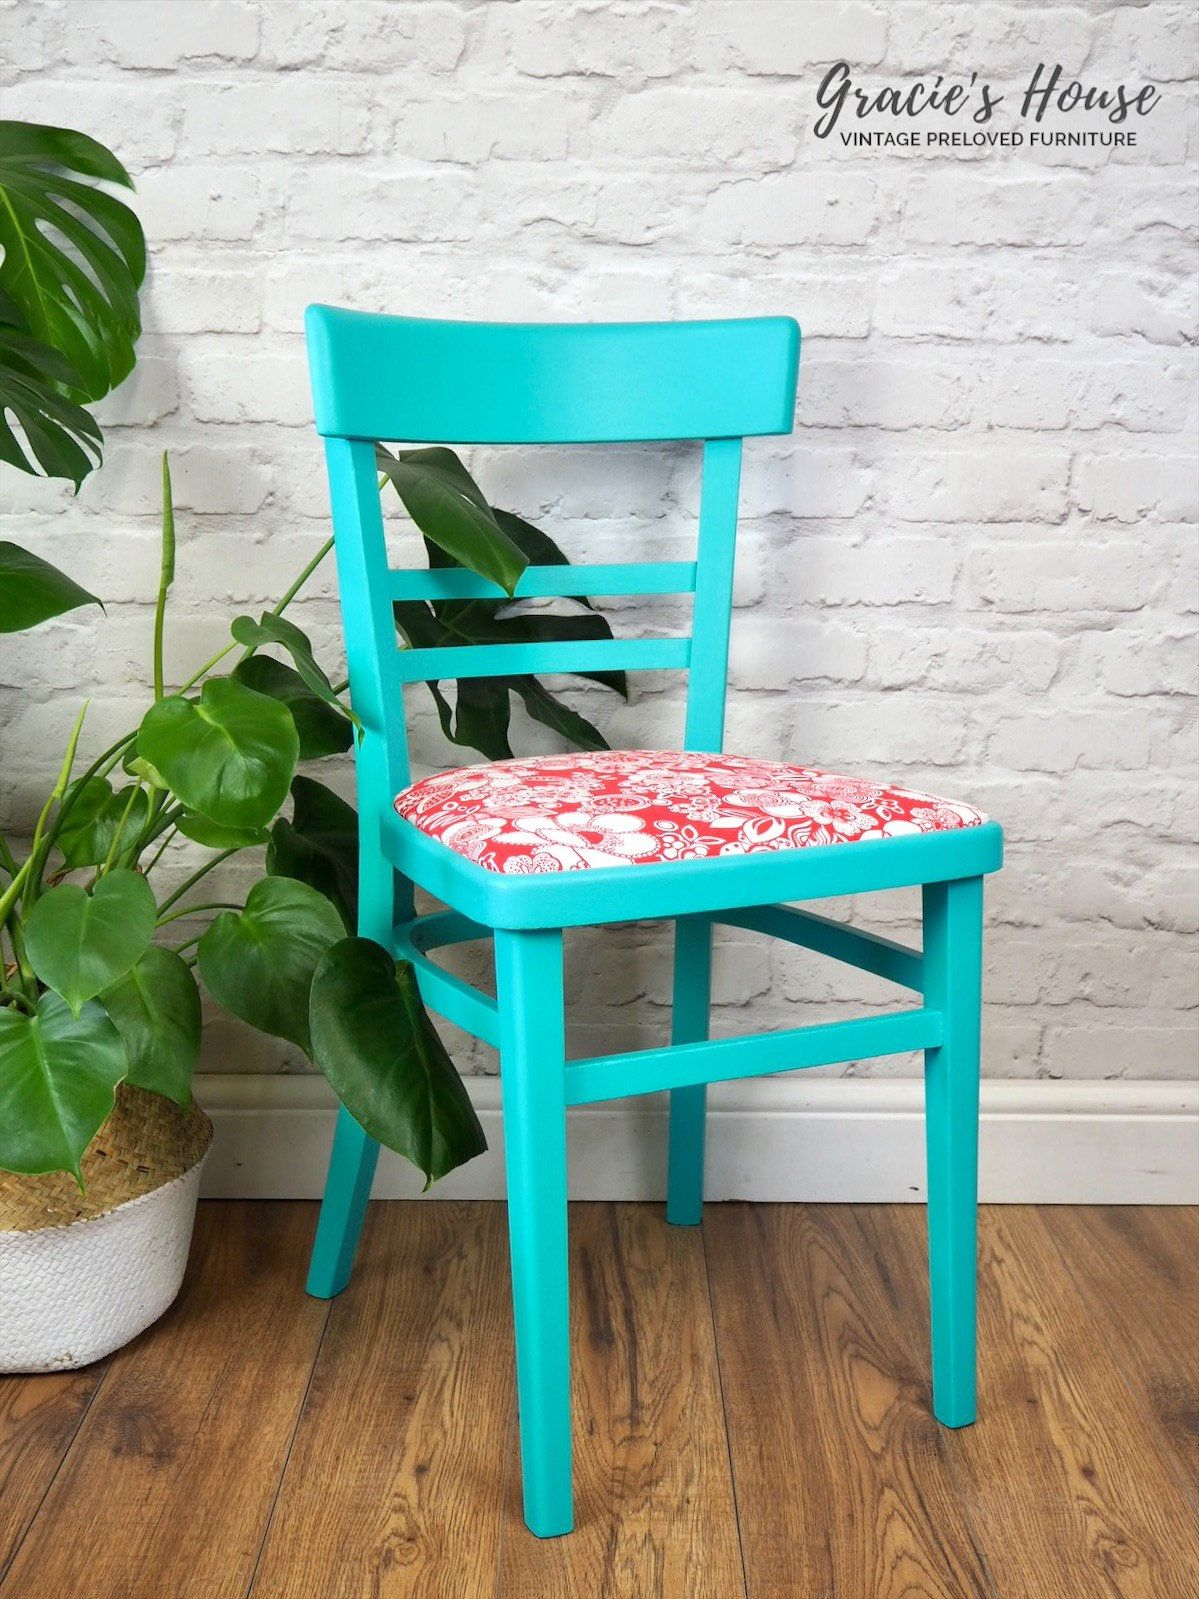 Excited to share this item from my #etsy shop: Retro Kitsch chair #bright #kitsch #retro #red #turquoise #fusionmineralpaint #gracieshouseuk #bedford #bromham #furnituremakeover #furniturepainter #furnitureupcycler #fusionmineralpaint #interiordesign #paintedfurniture #paintitbeautiful #upcycle